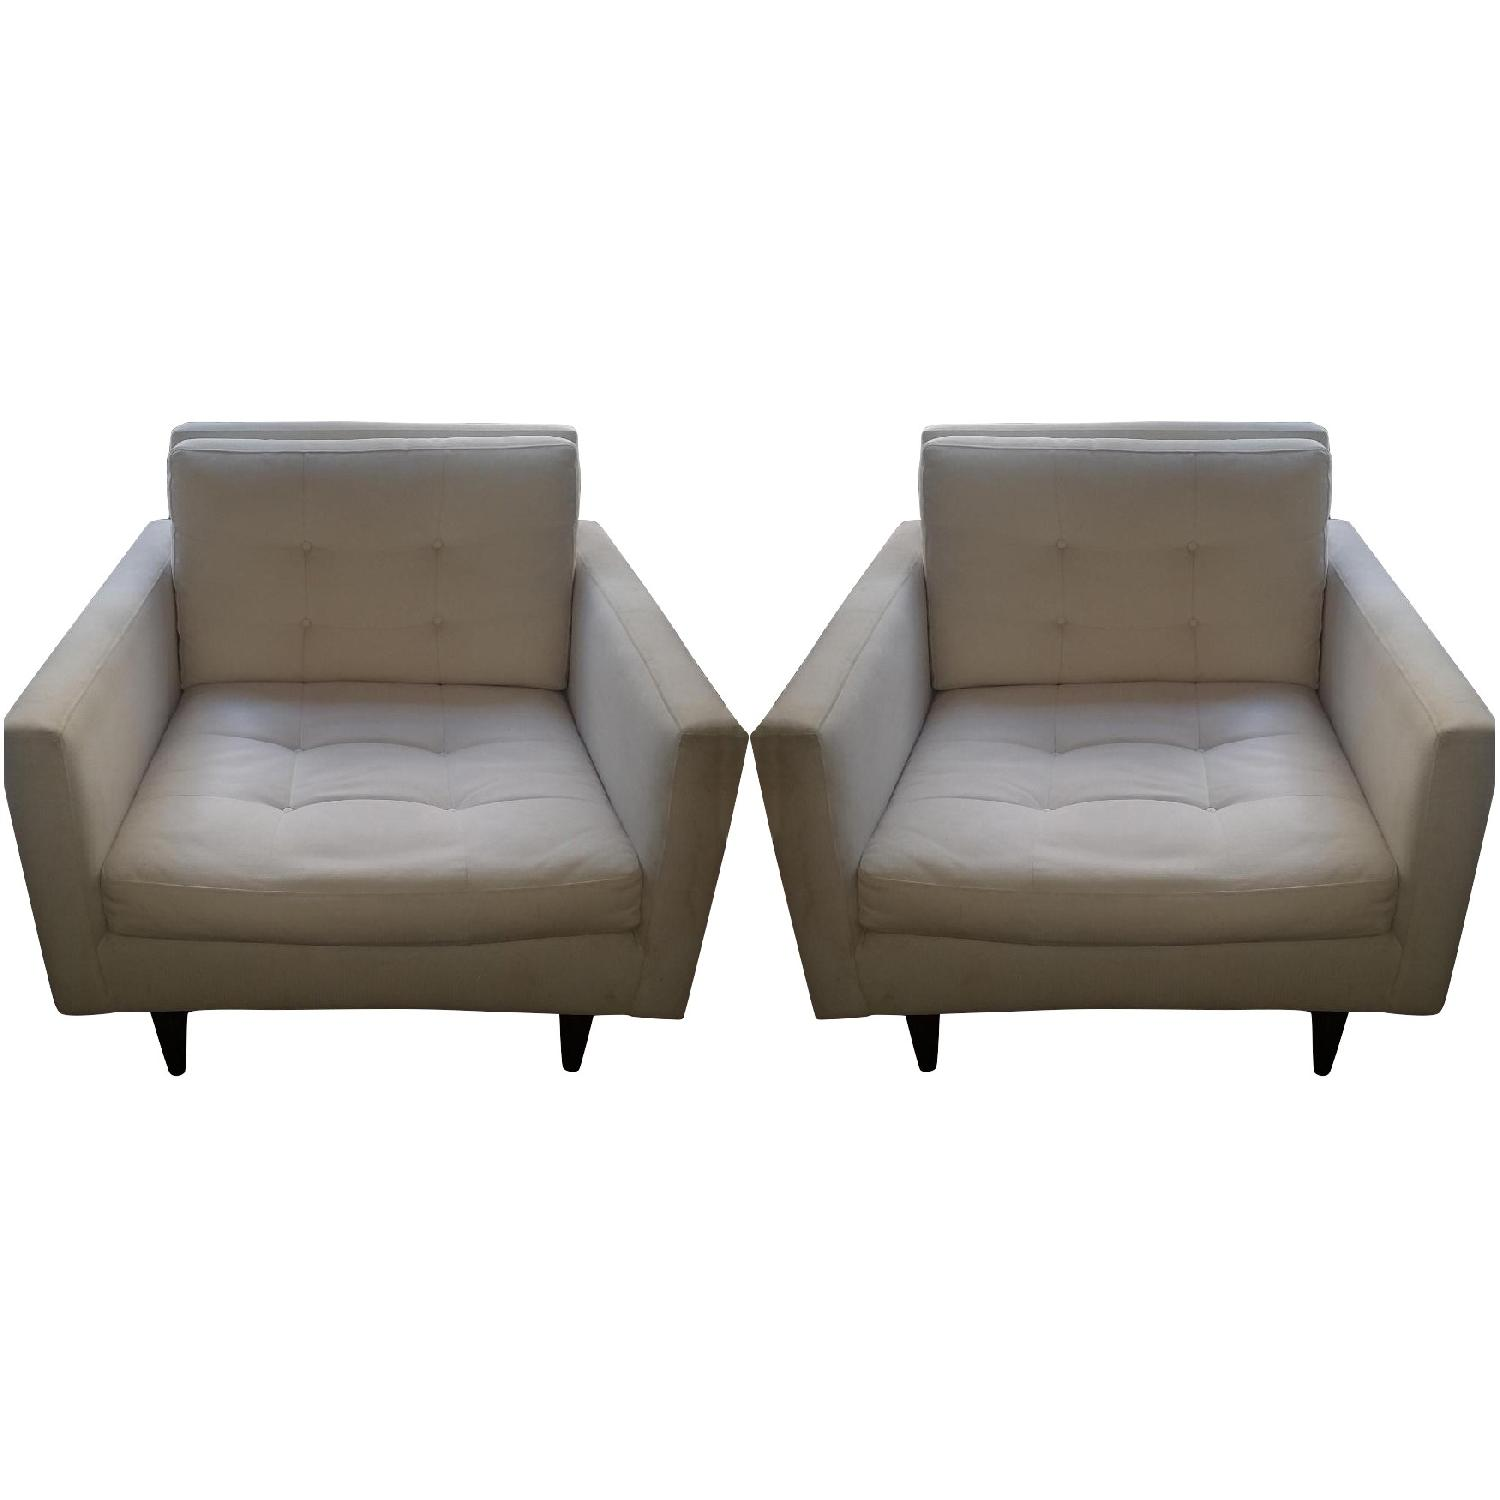 Crate & Barrel Petrie Chairs - Pair - image-0